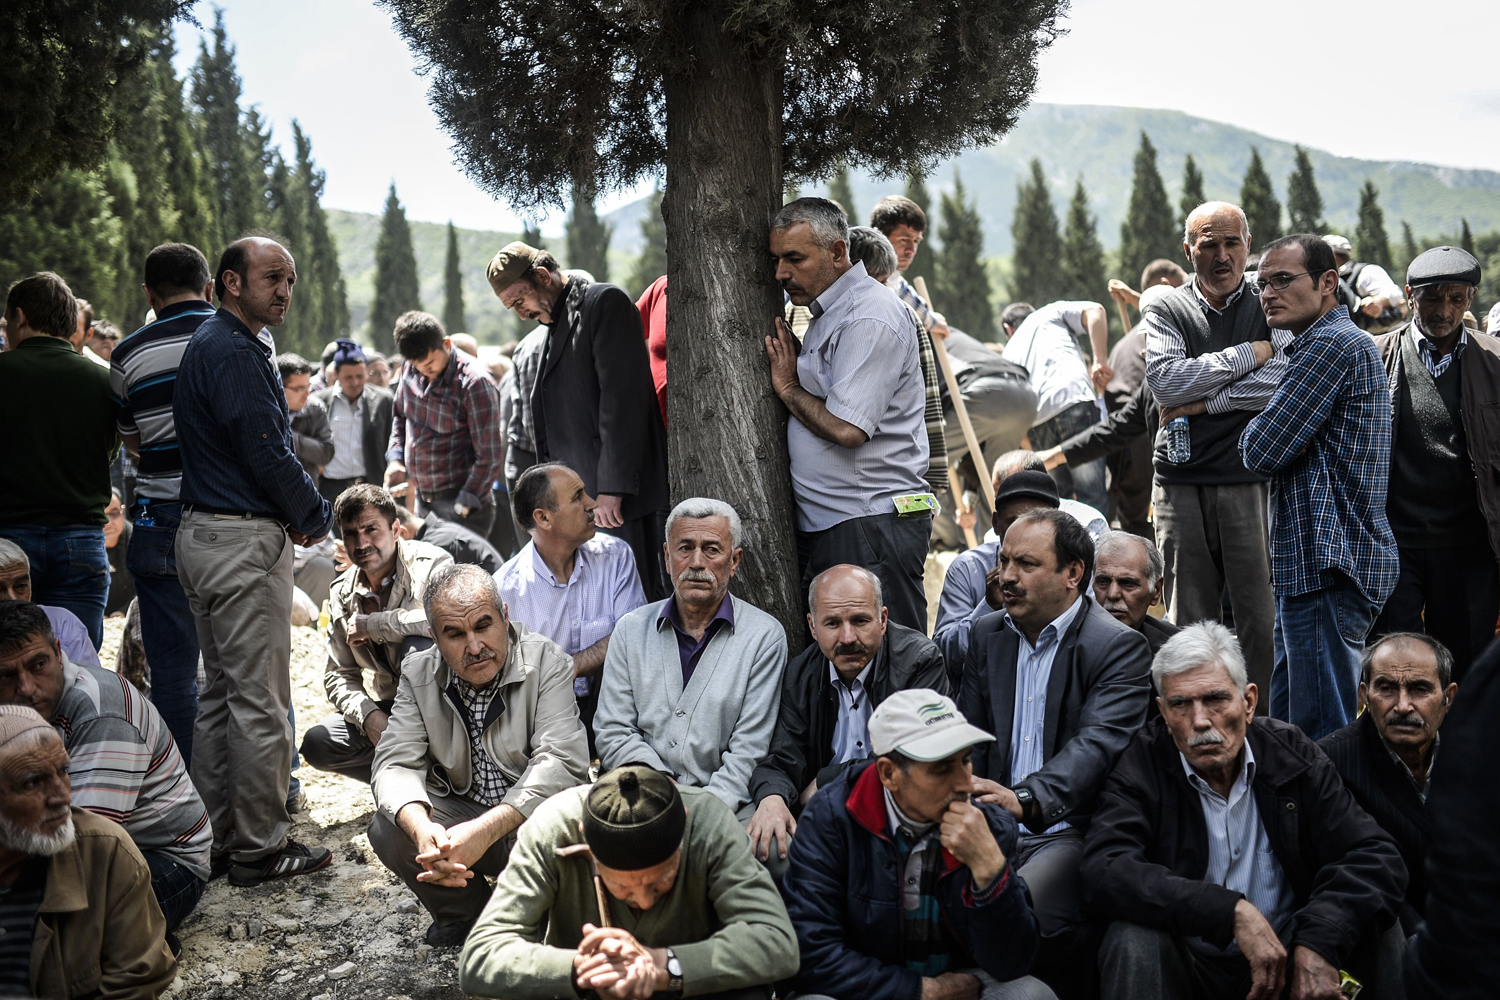 People mourn in a a cemetery during the funeral ceremony of miners who died in an explosion, in the western Turkish province of Manisa, May 15, 2014.